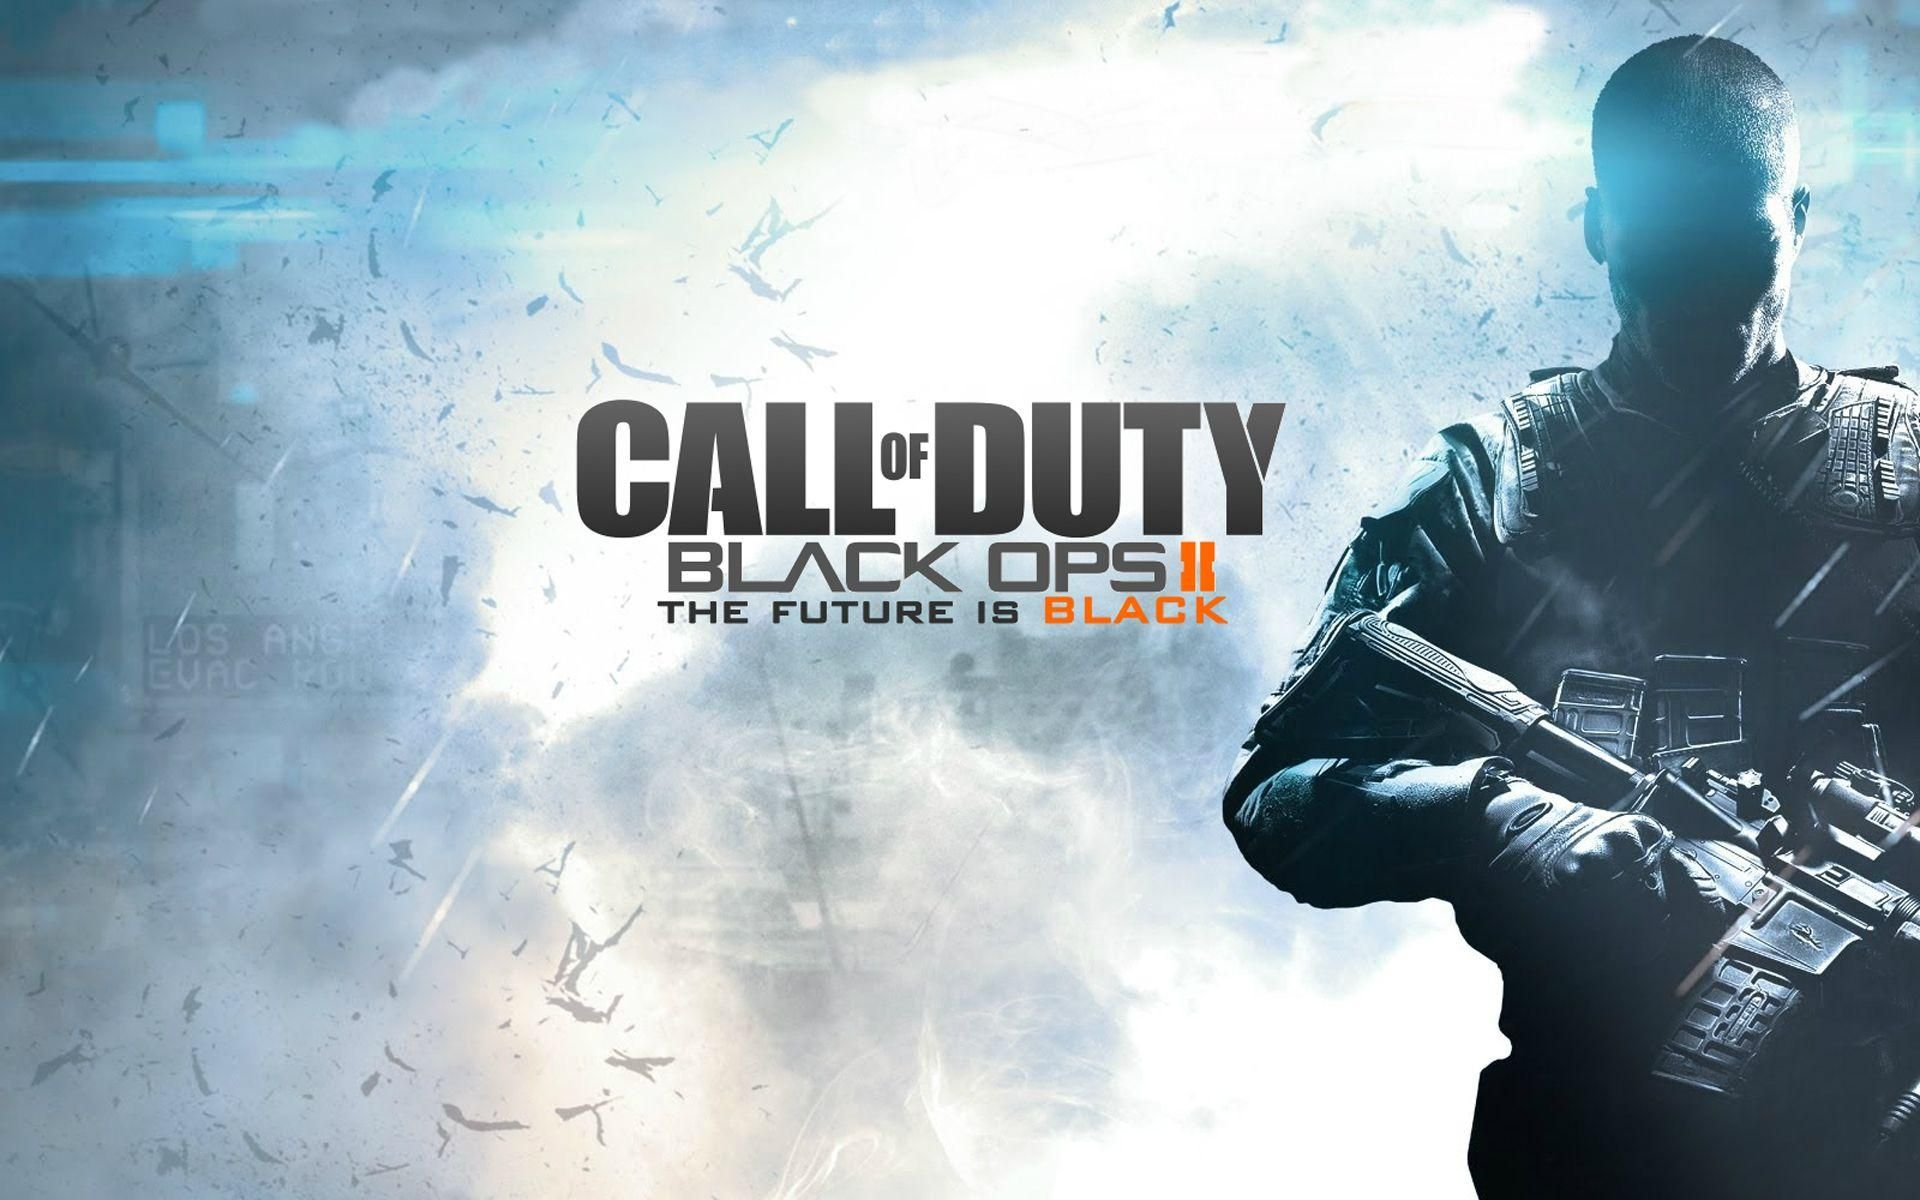 Call Of Duty Black Ops Ii Computer Wallpapers Desktop Call Of